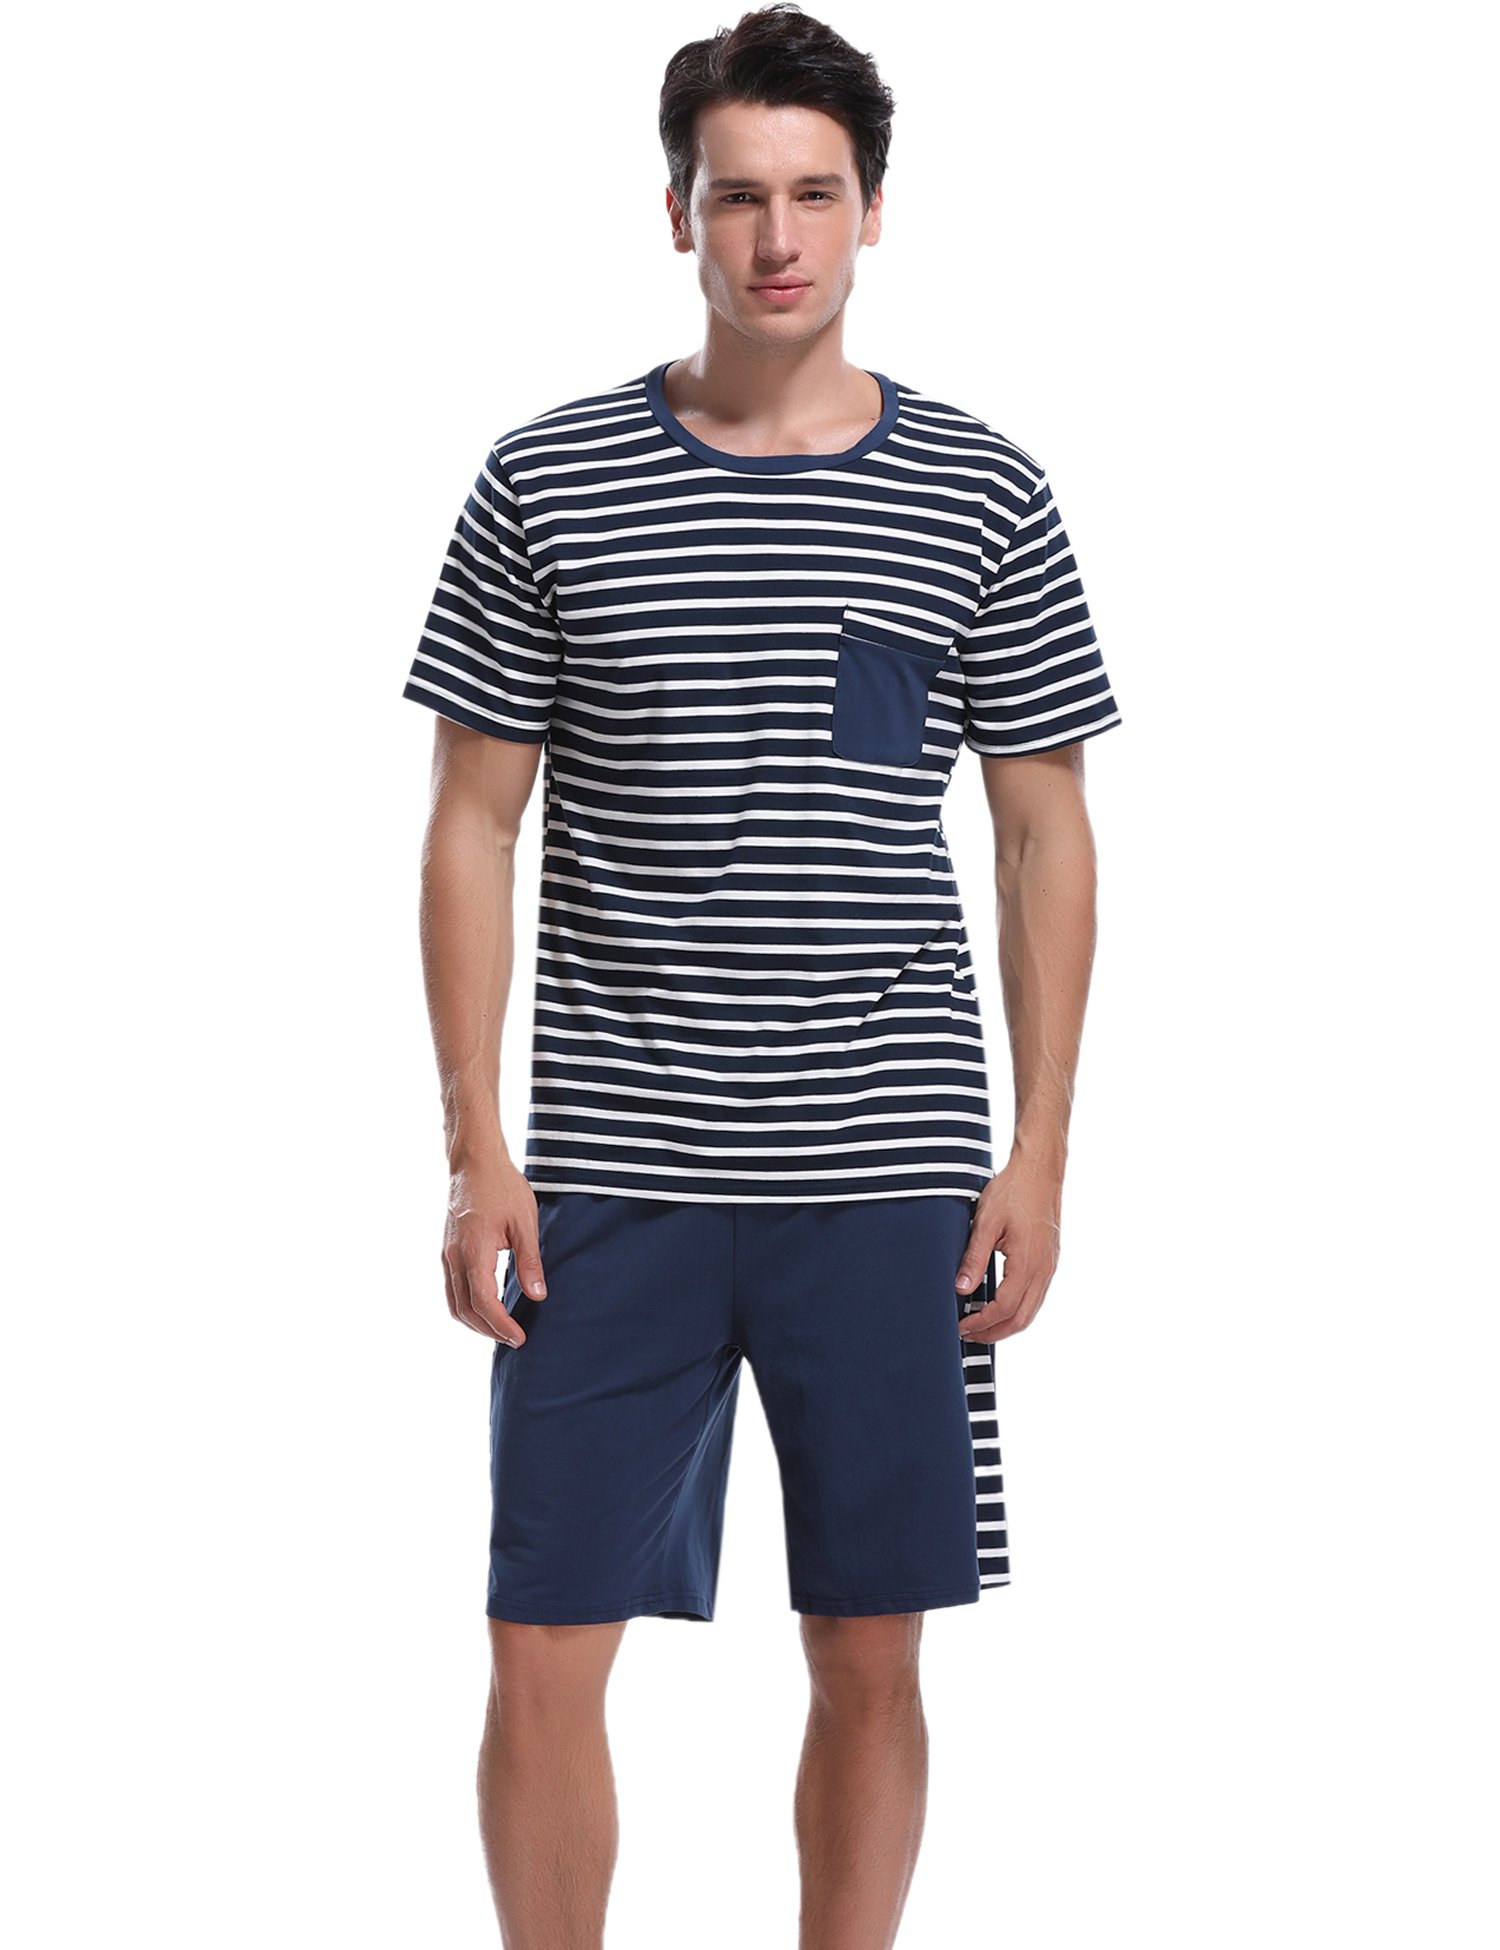 Aibrou Men's Summer Sleepwear Short Sleeve Striped Cotton Shorts and Top Pajama Set by Aibrou